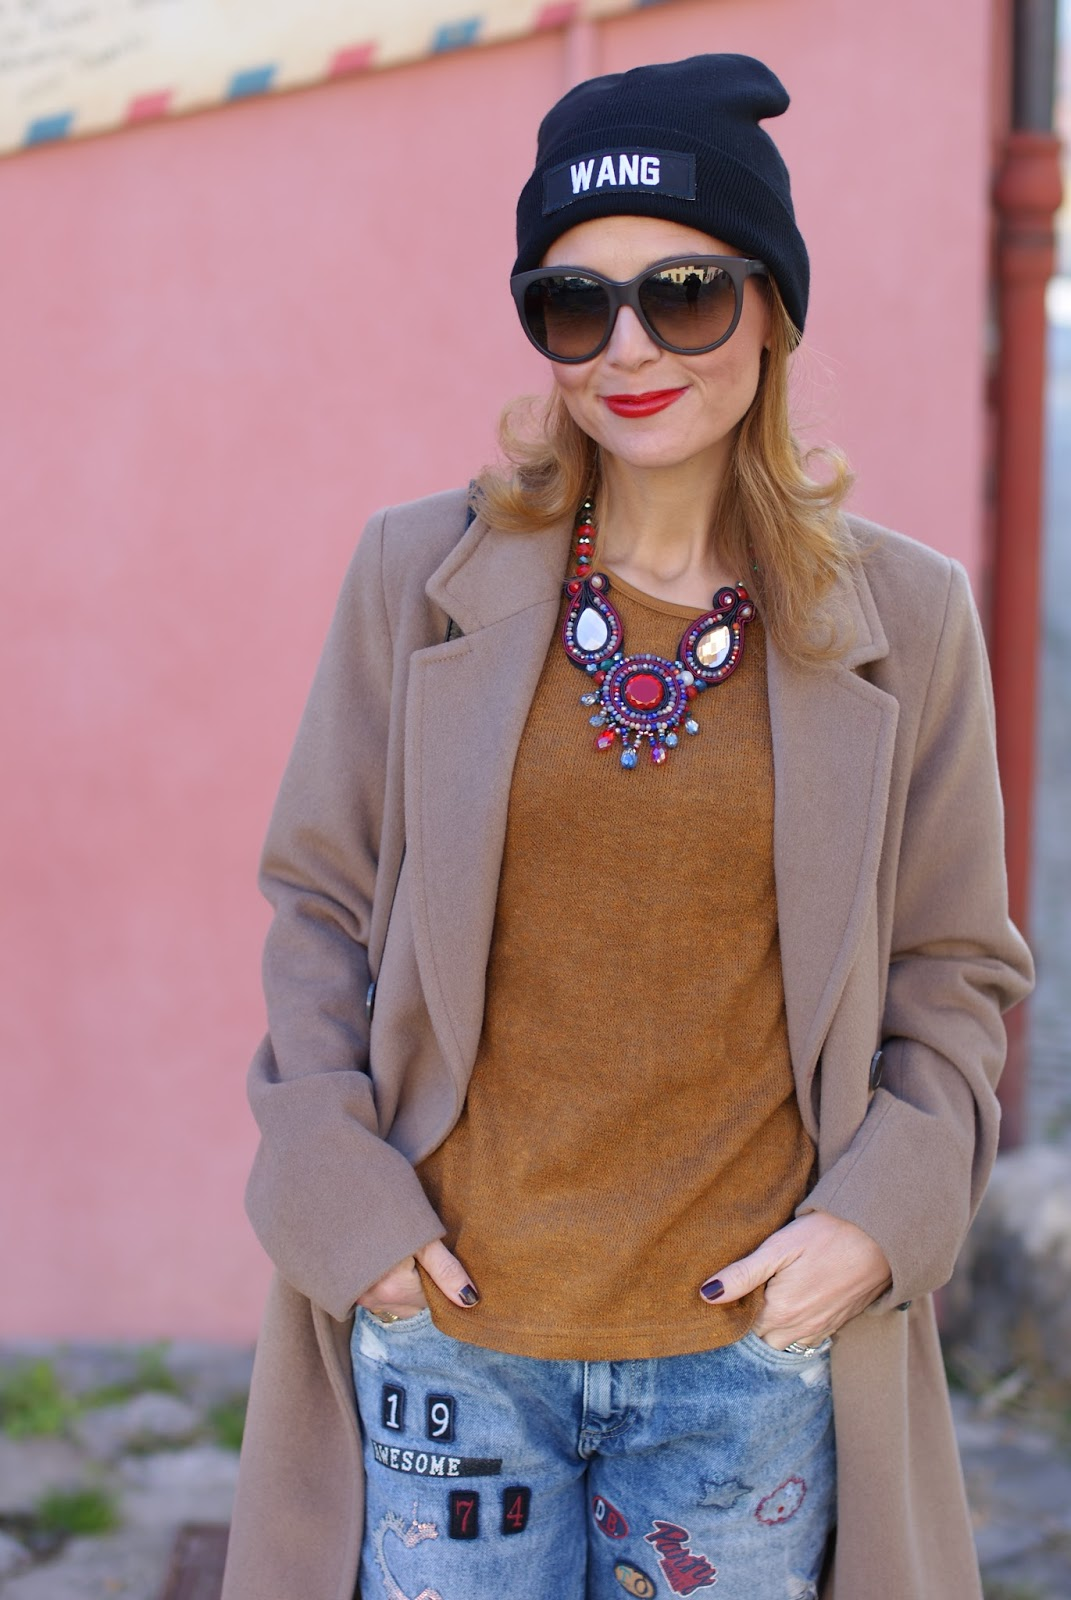 Wang beanie, Zara patched jeans, YSL rouge pur couture and Kiabi camel boyfriend coat on Fashion and Cookies fashion blog, fashion blogger style